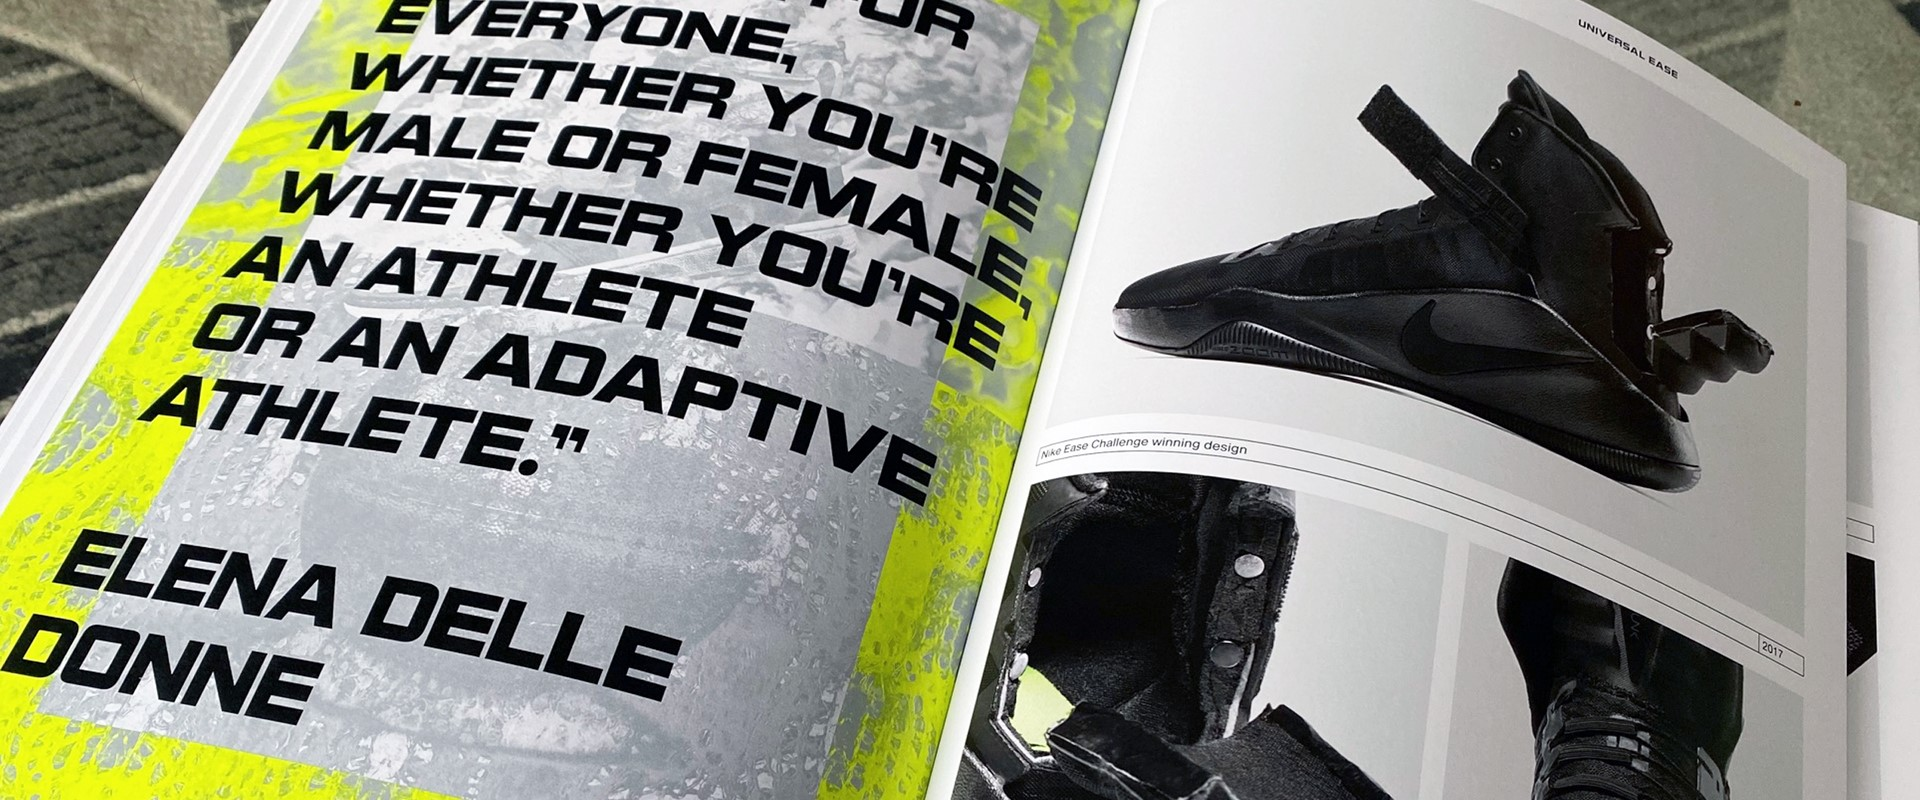 'Nike: Better is temporary' book review